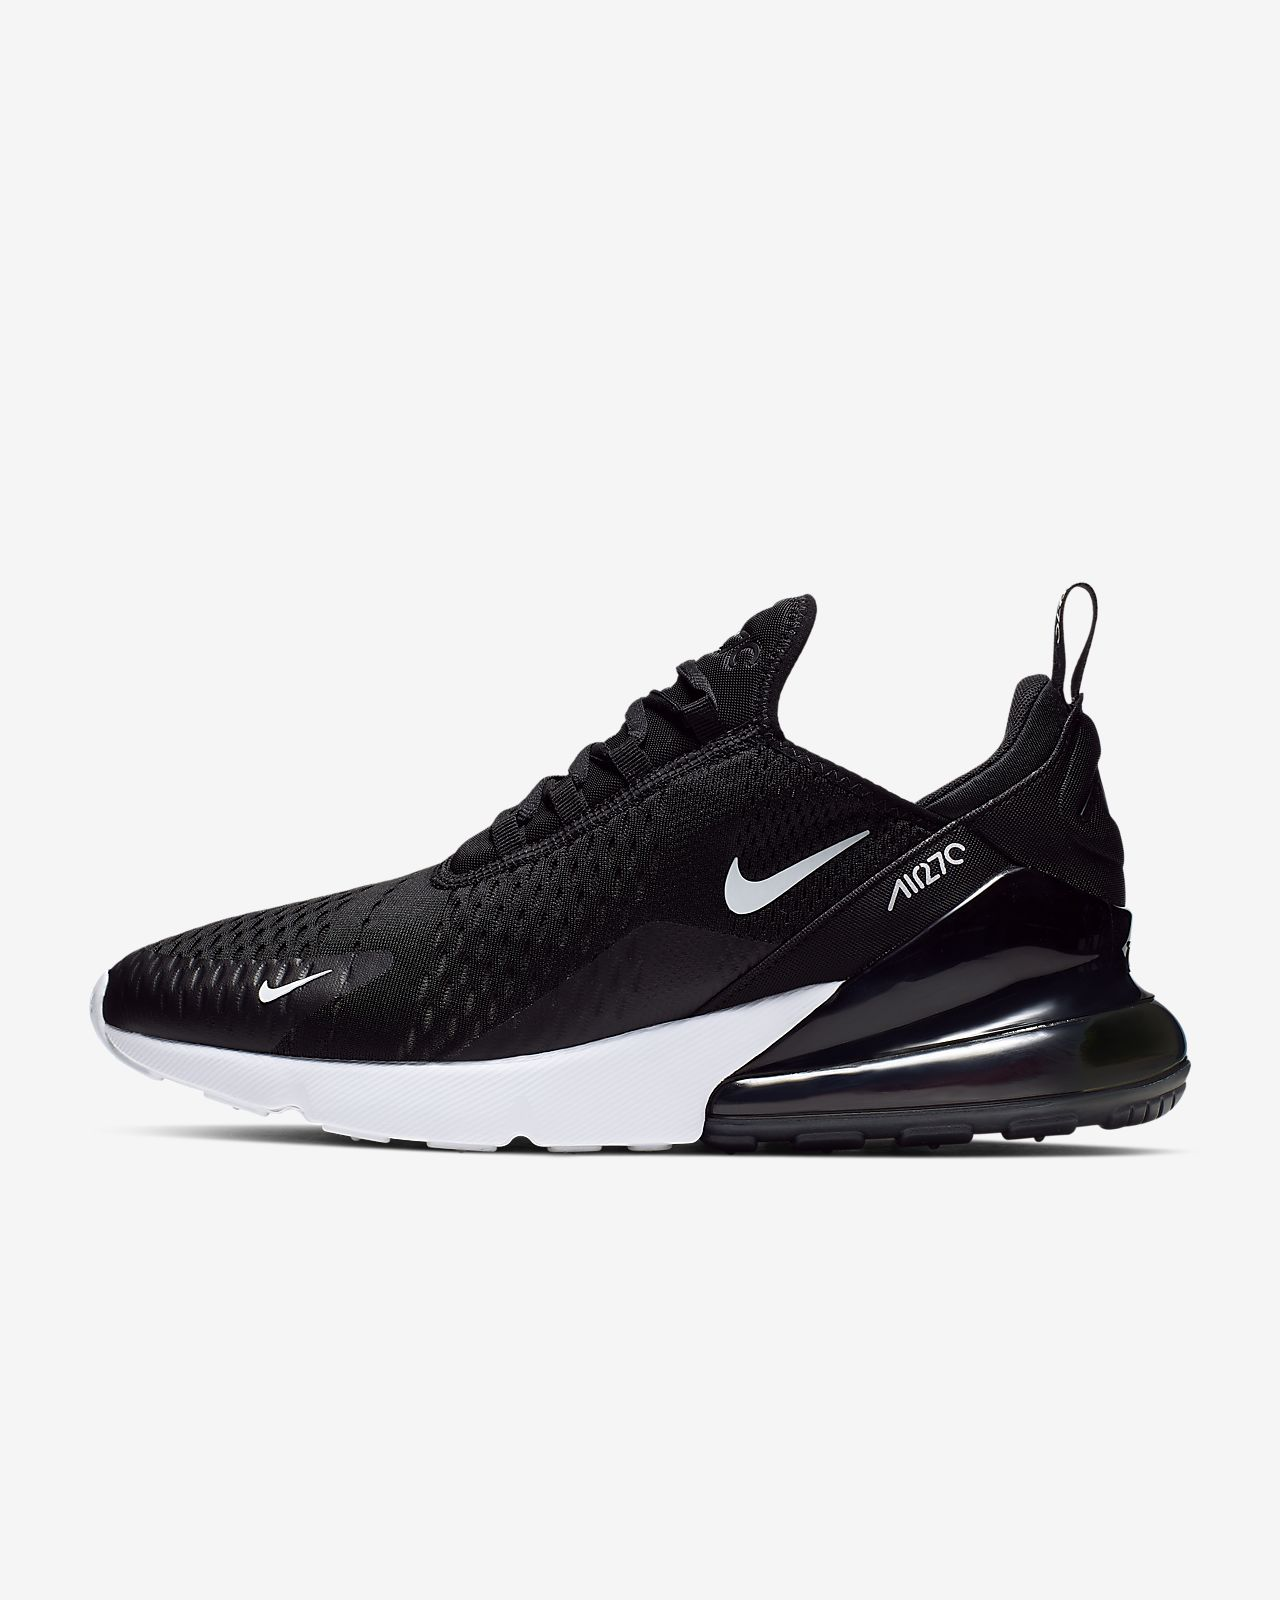 buying now exceptional range of styles diverse styles Nike Air Max 270 Men's Shoe